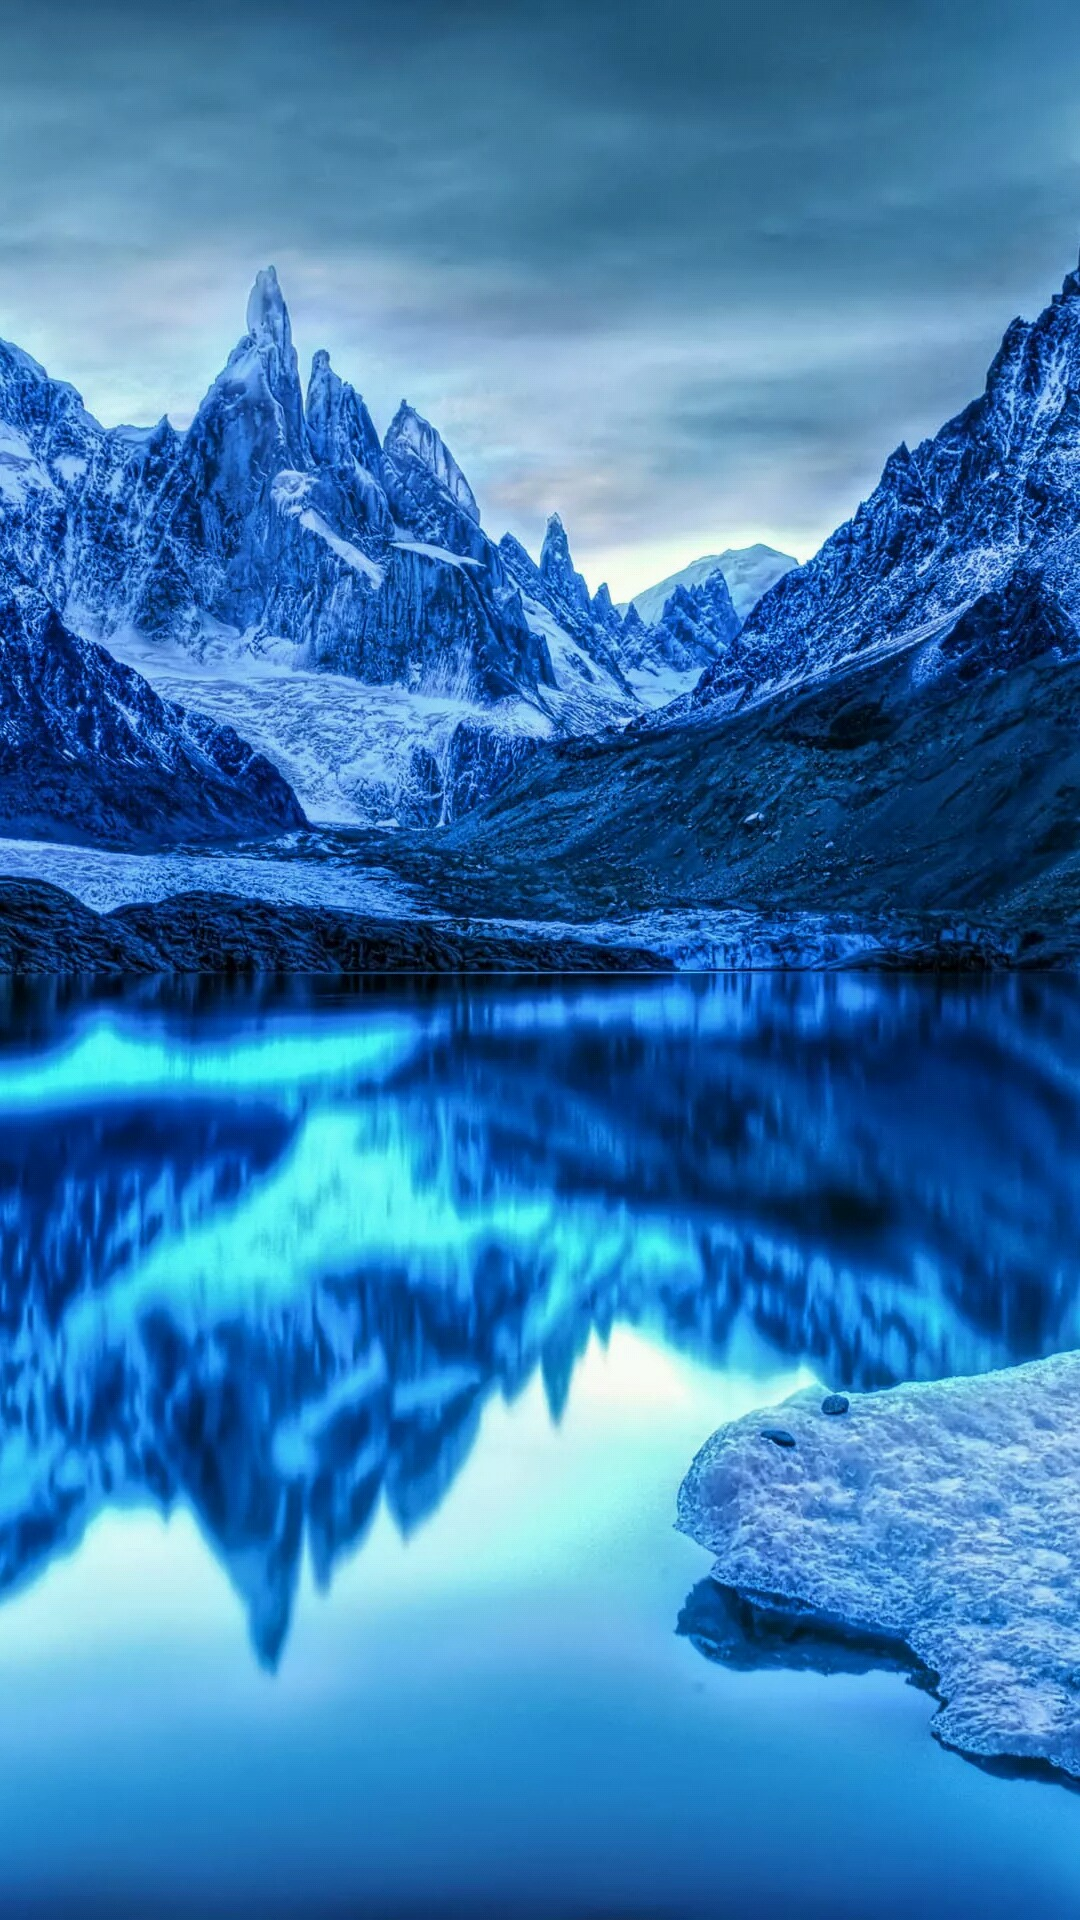 hd nature wallpapers for j5: Best Mobile Wallpaper Gallery - SuvicharStar.com